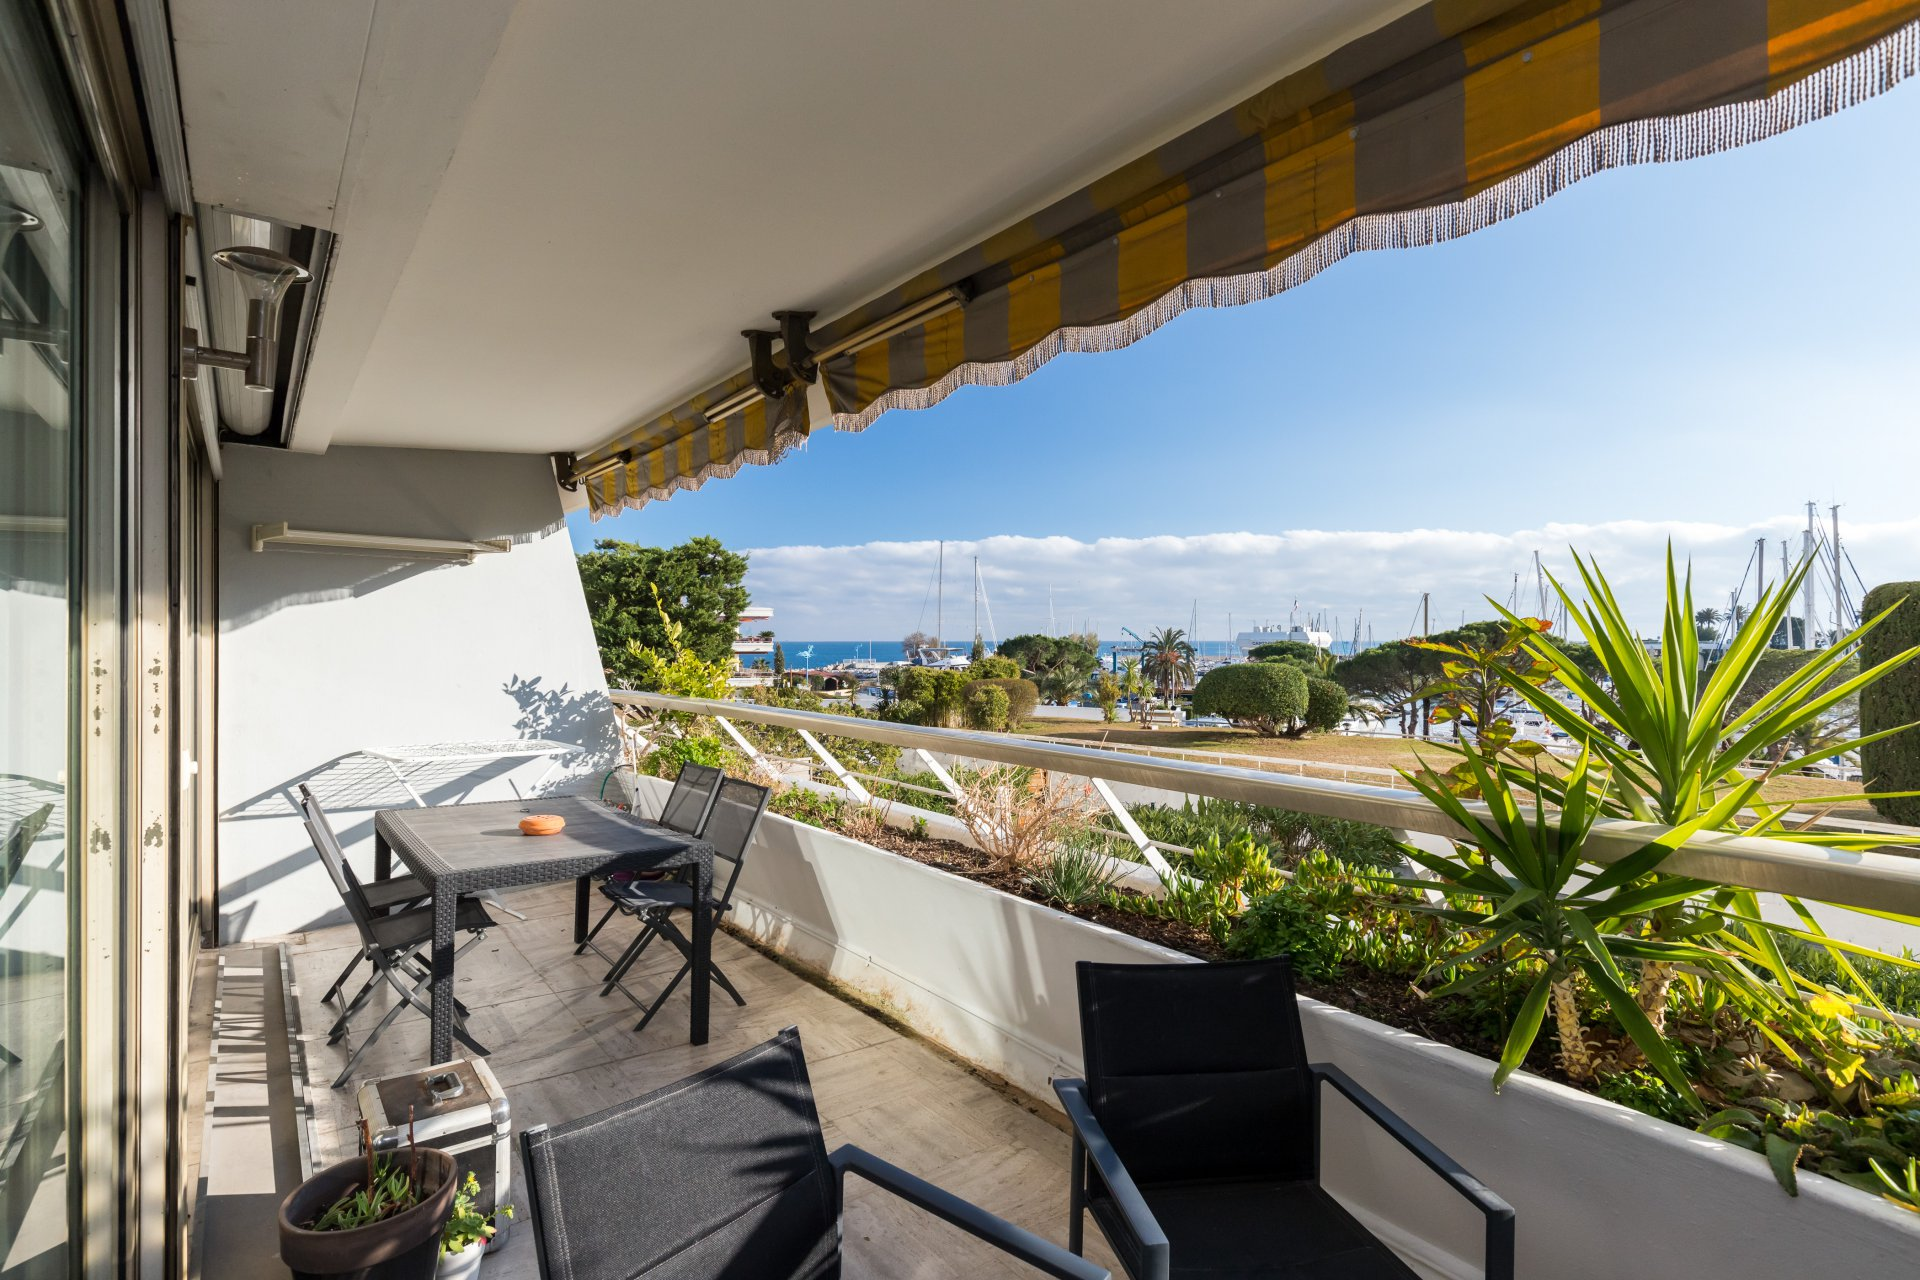 Villeneuve Loubet / Baie des Anges Marina - One  Bedrooms